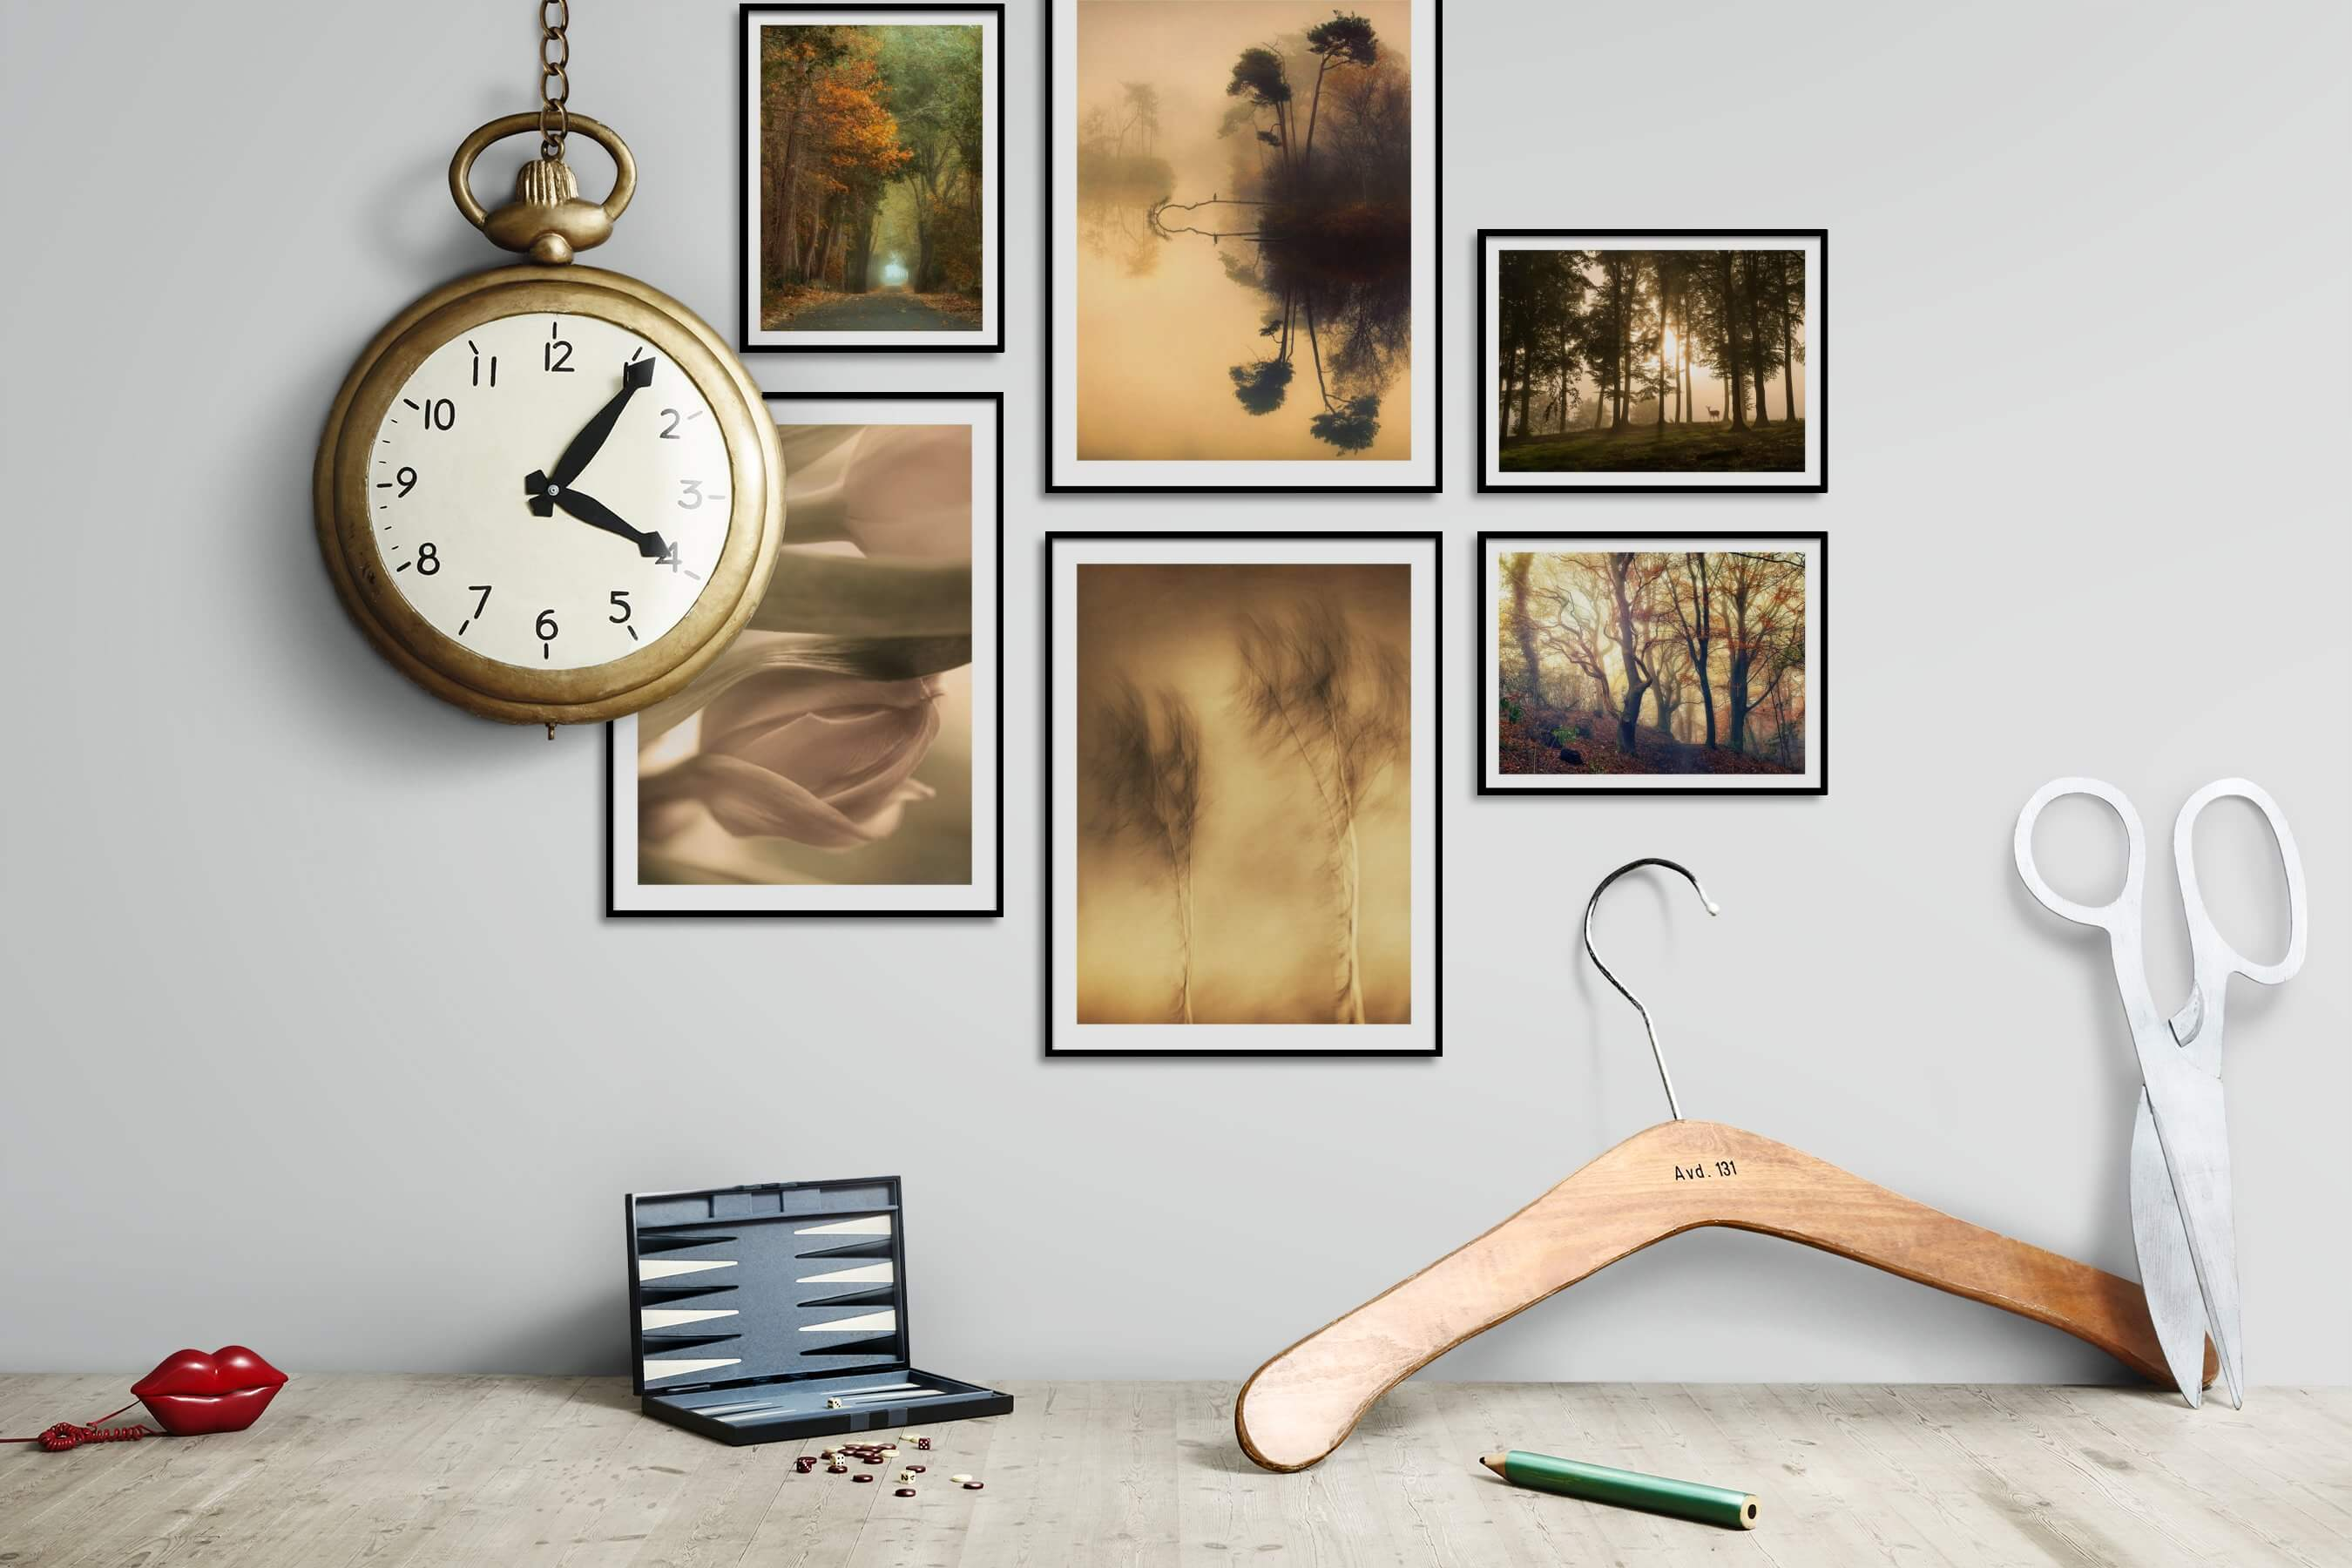 Gallery wall idea with six framed pictures arranged on a wall depicting Nature, For the Moderate, Flowers & Plants, and Animals